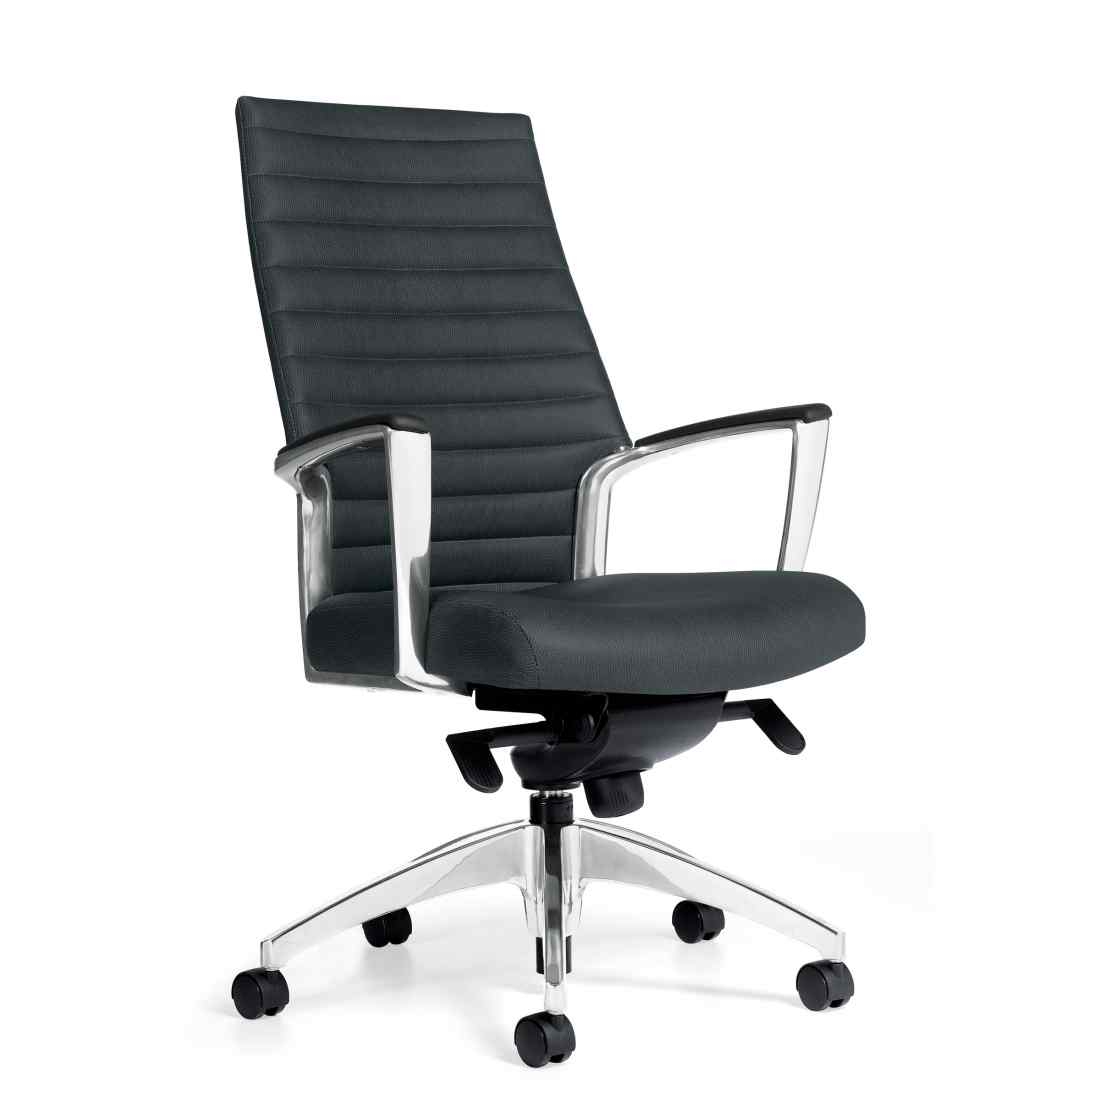 Express Premium Comfort Mesh Chair Office Chair Repair